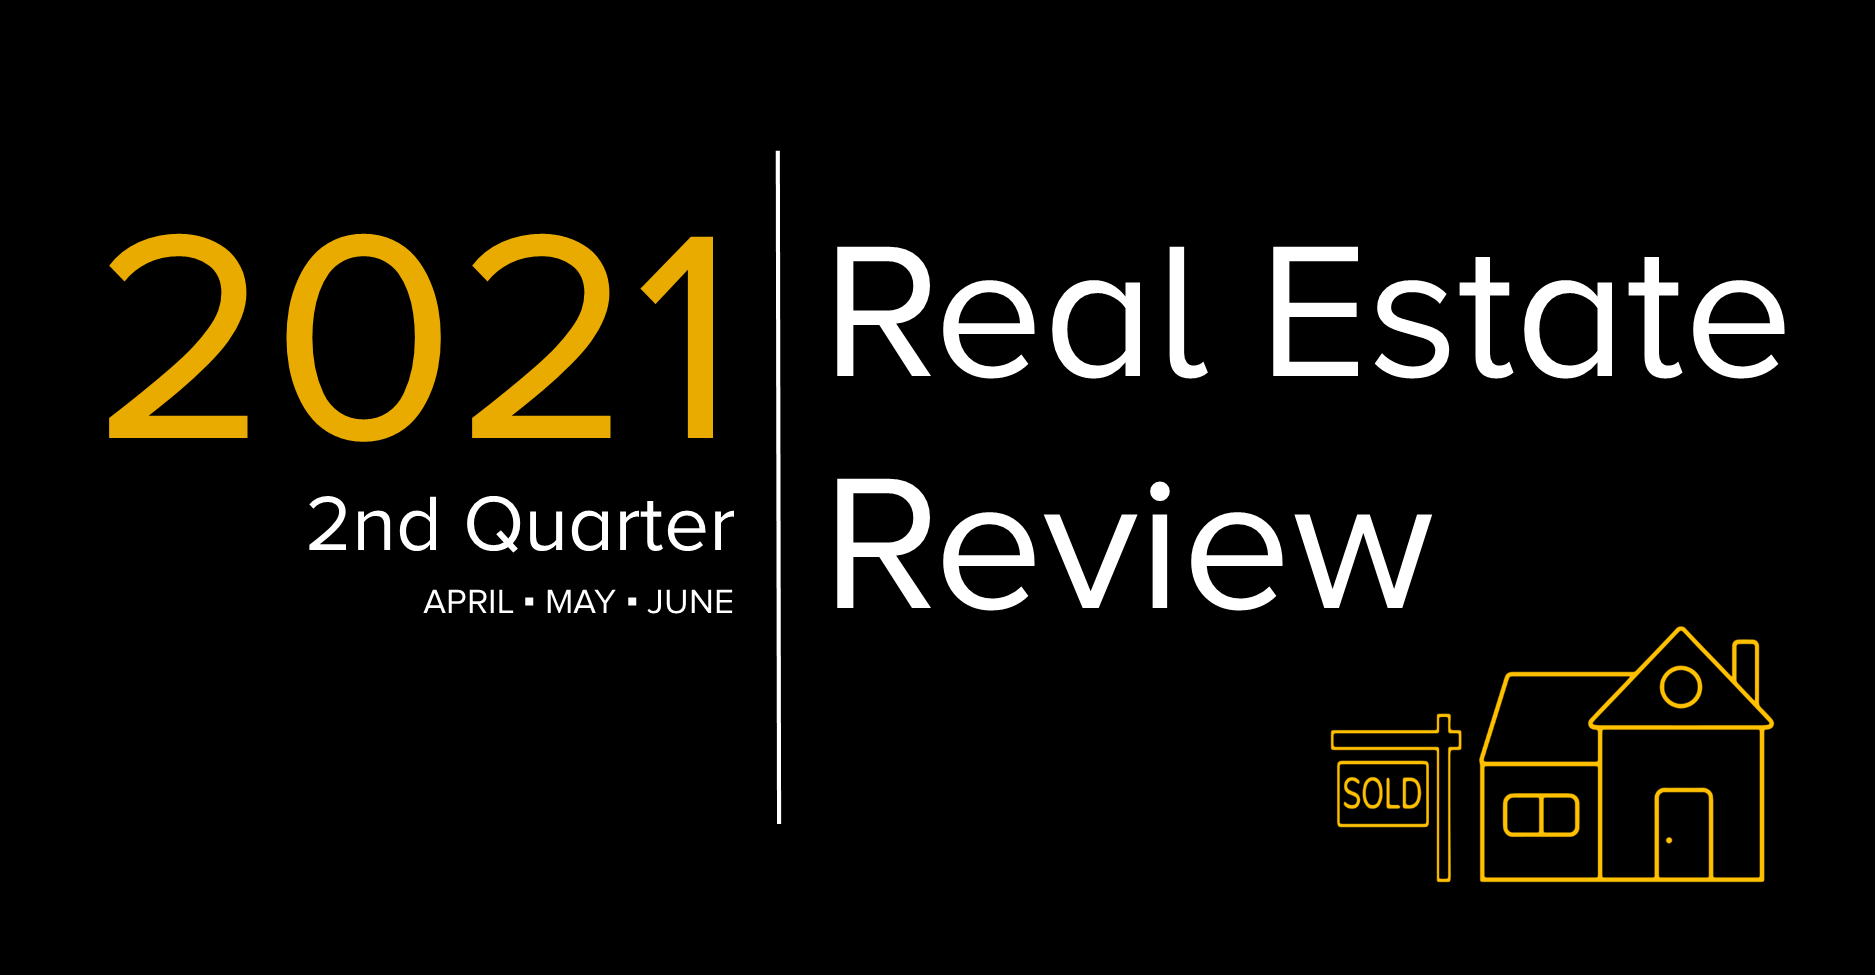 2021 2nd Quarter Real Estate Review